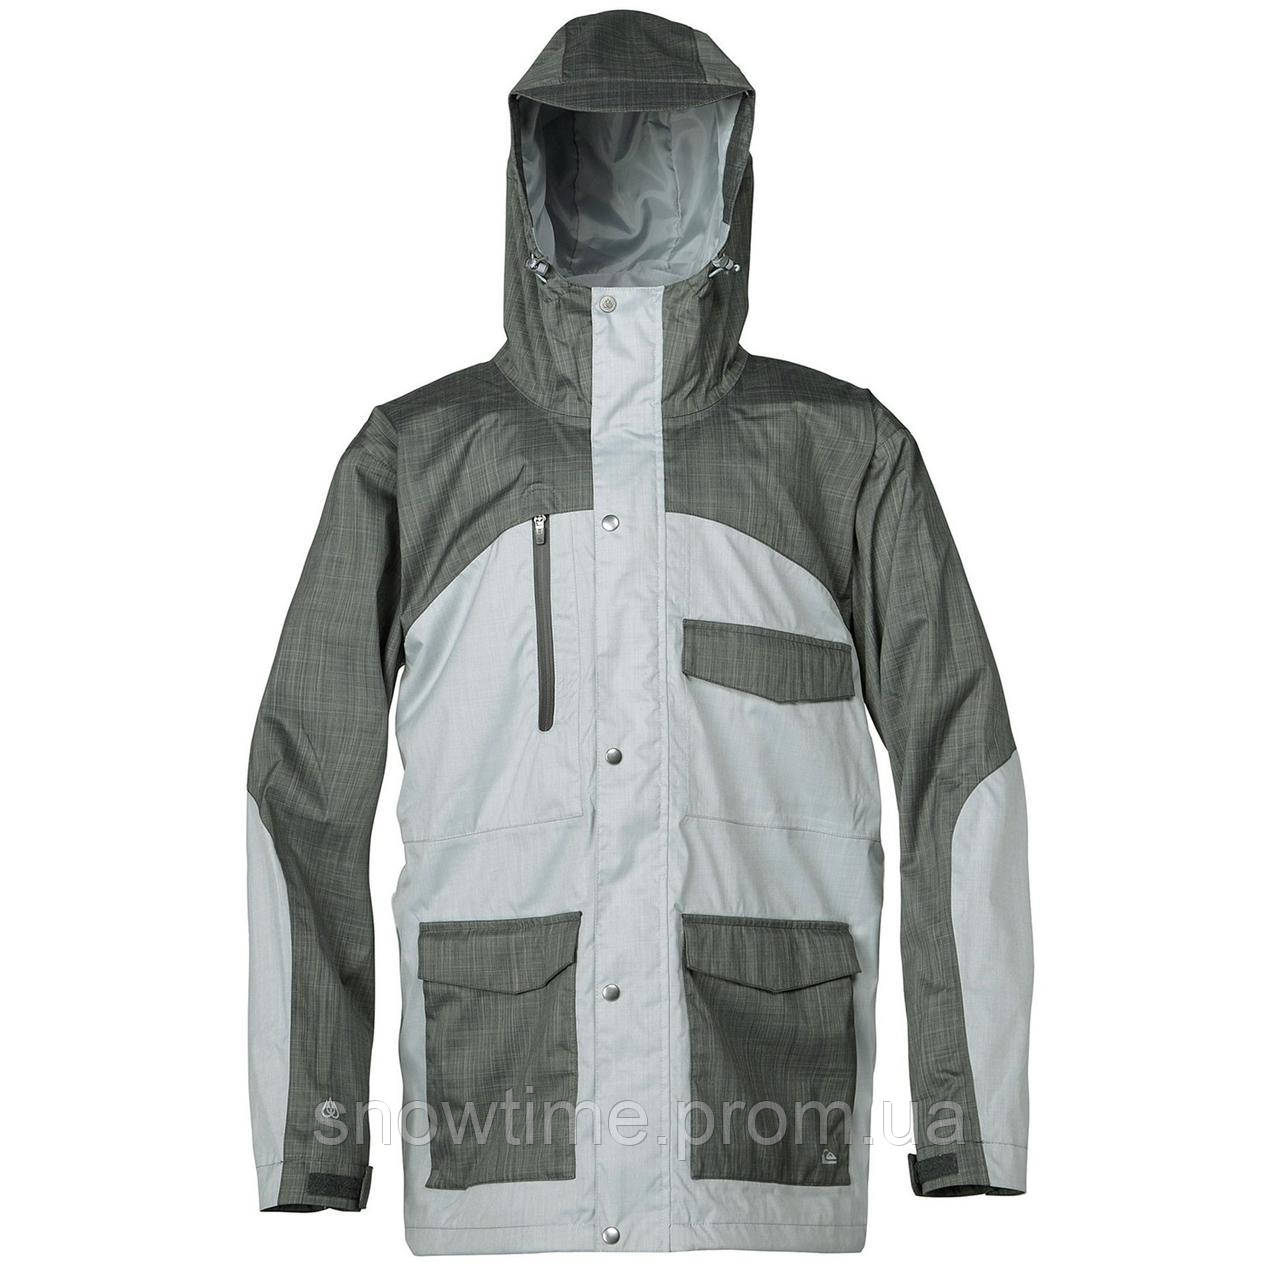 5c9b11d8d298 Горнолыжная сноубордическая куртка Quiksilver Travis Rice Roger That Shell  Jacket - Waterproof L